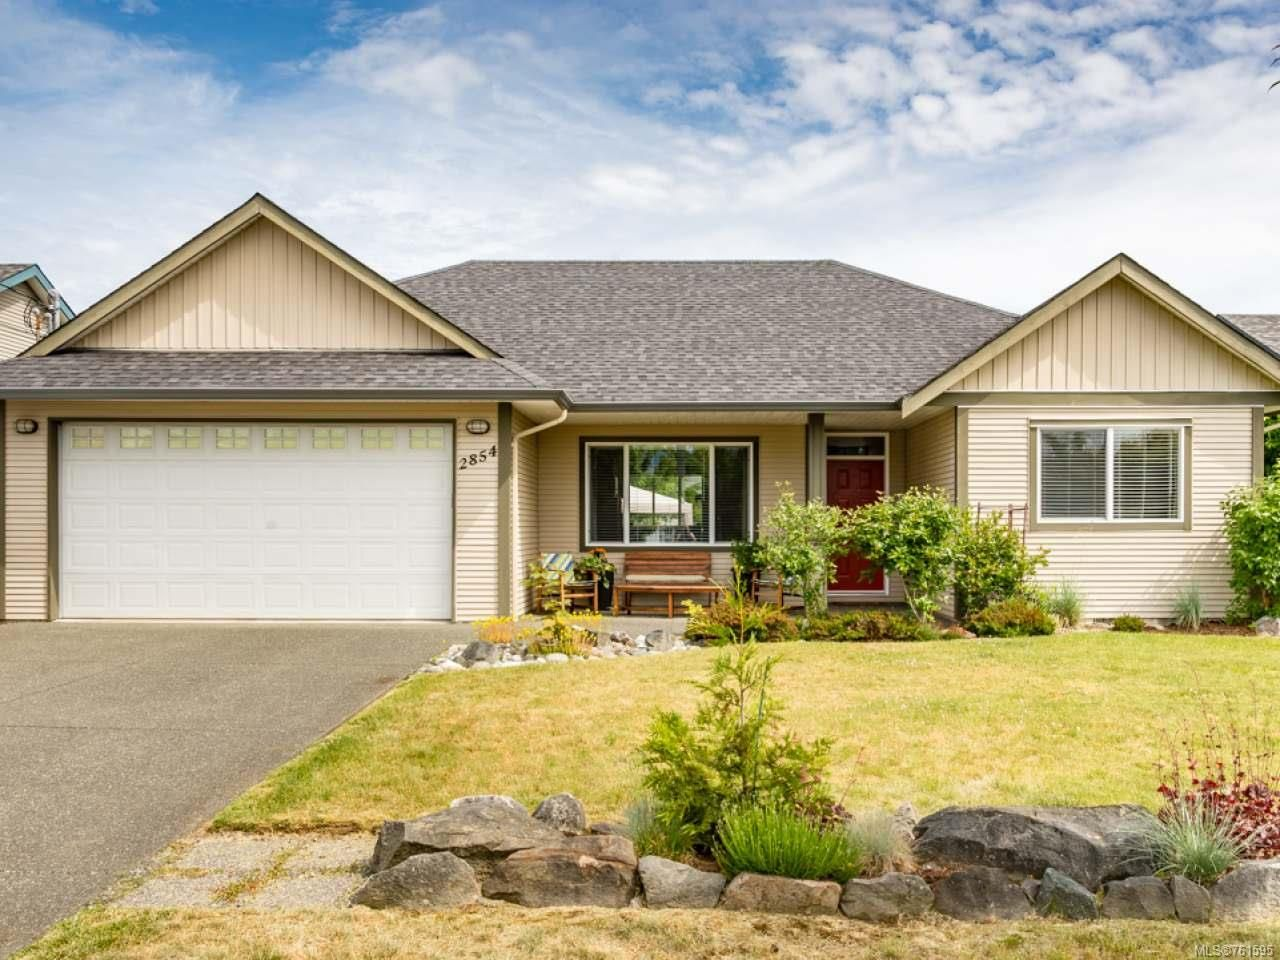 Main Photo: 2854 Ulverston Ave in CUMBERLAND: CV Cumberland House for sale (Comox Valley)  : MLS®# 761595